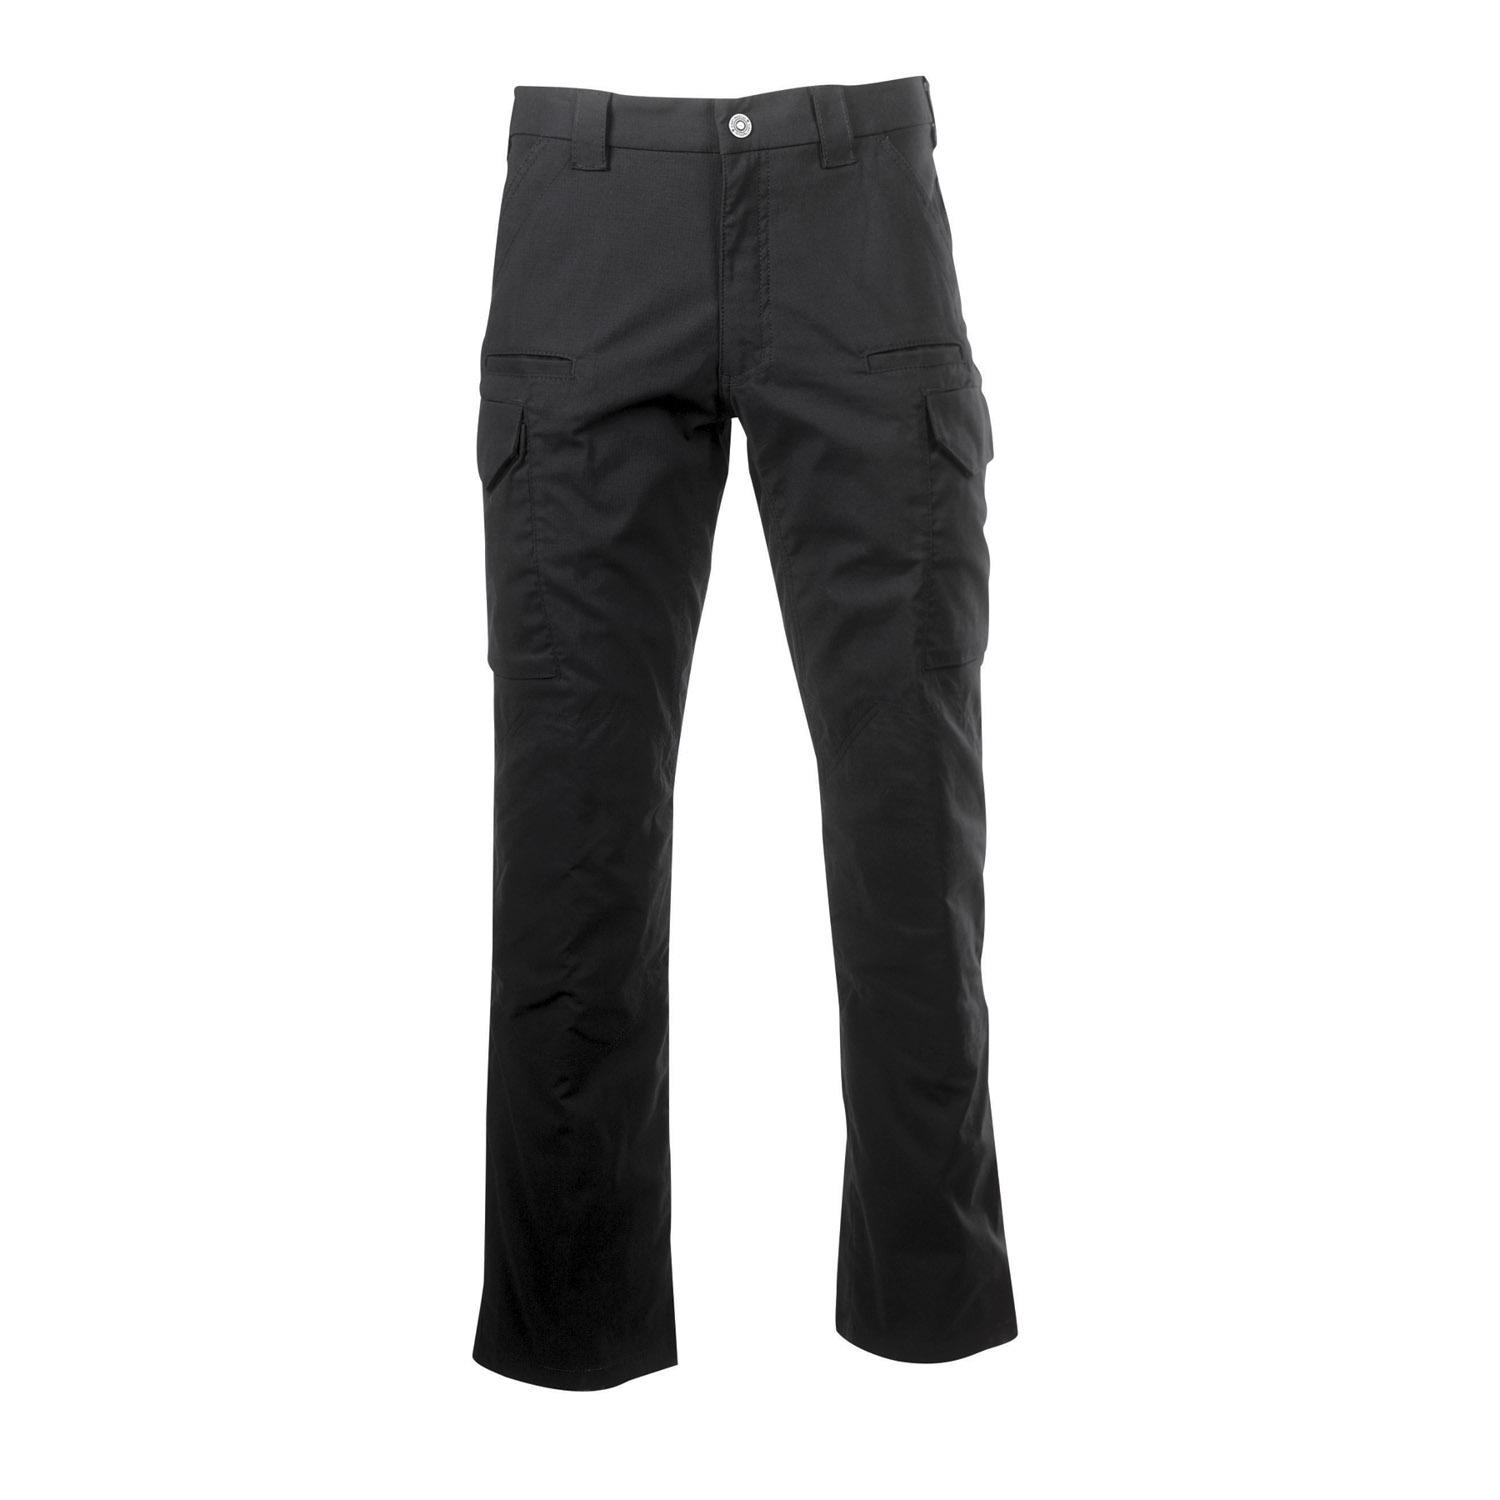 First Tactical Women's V2 Tactical Pants